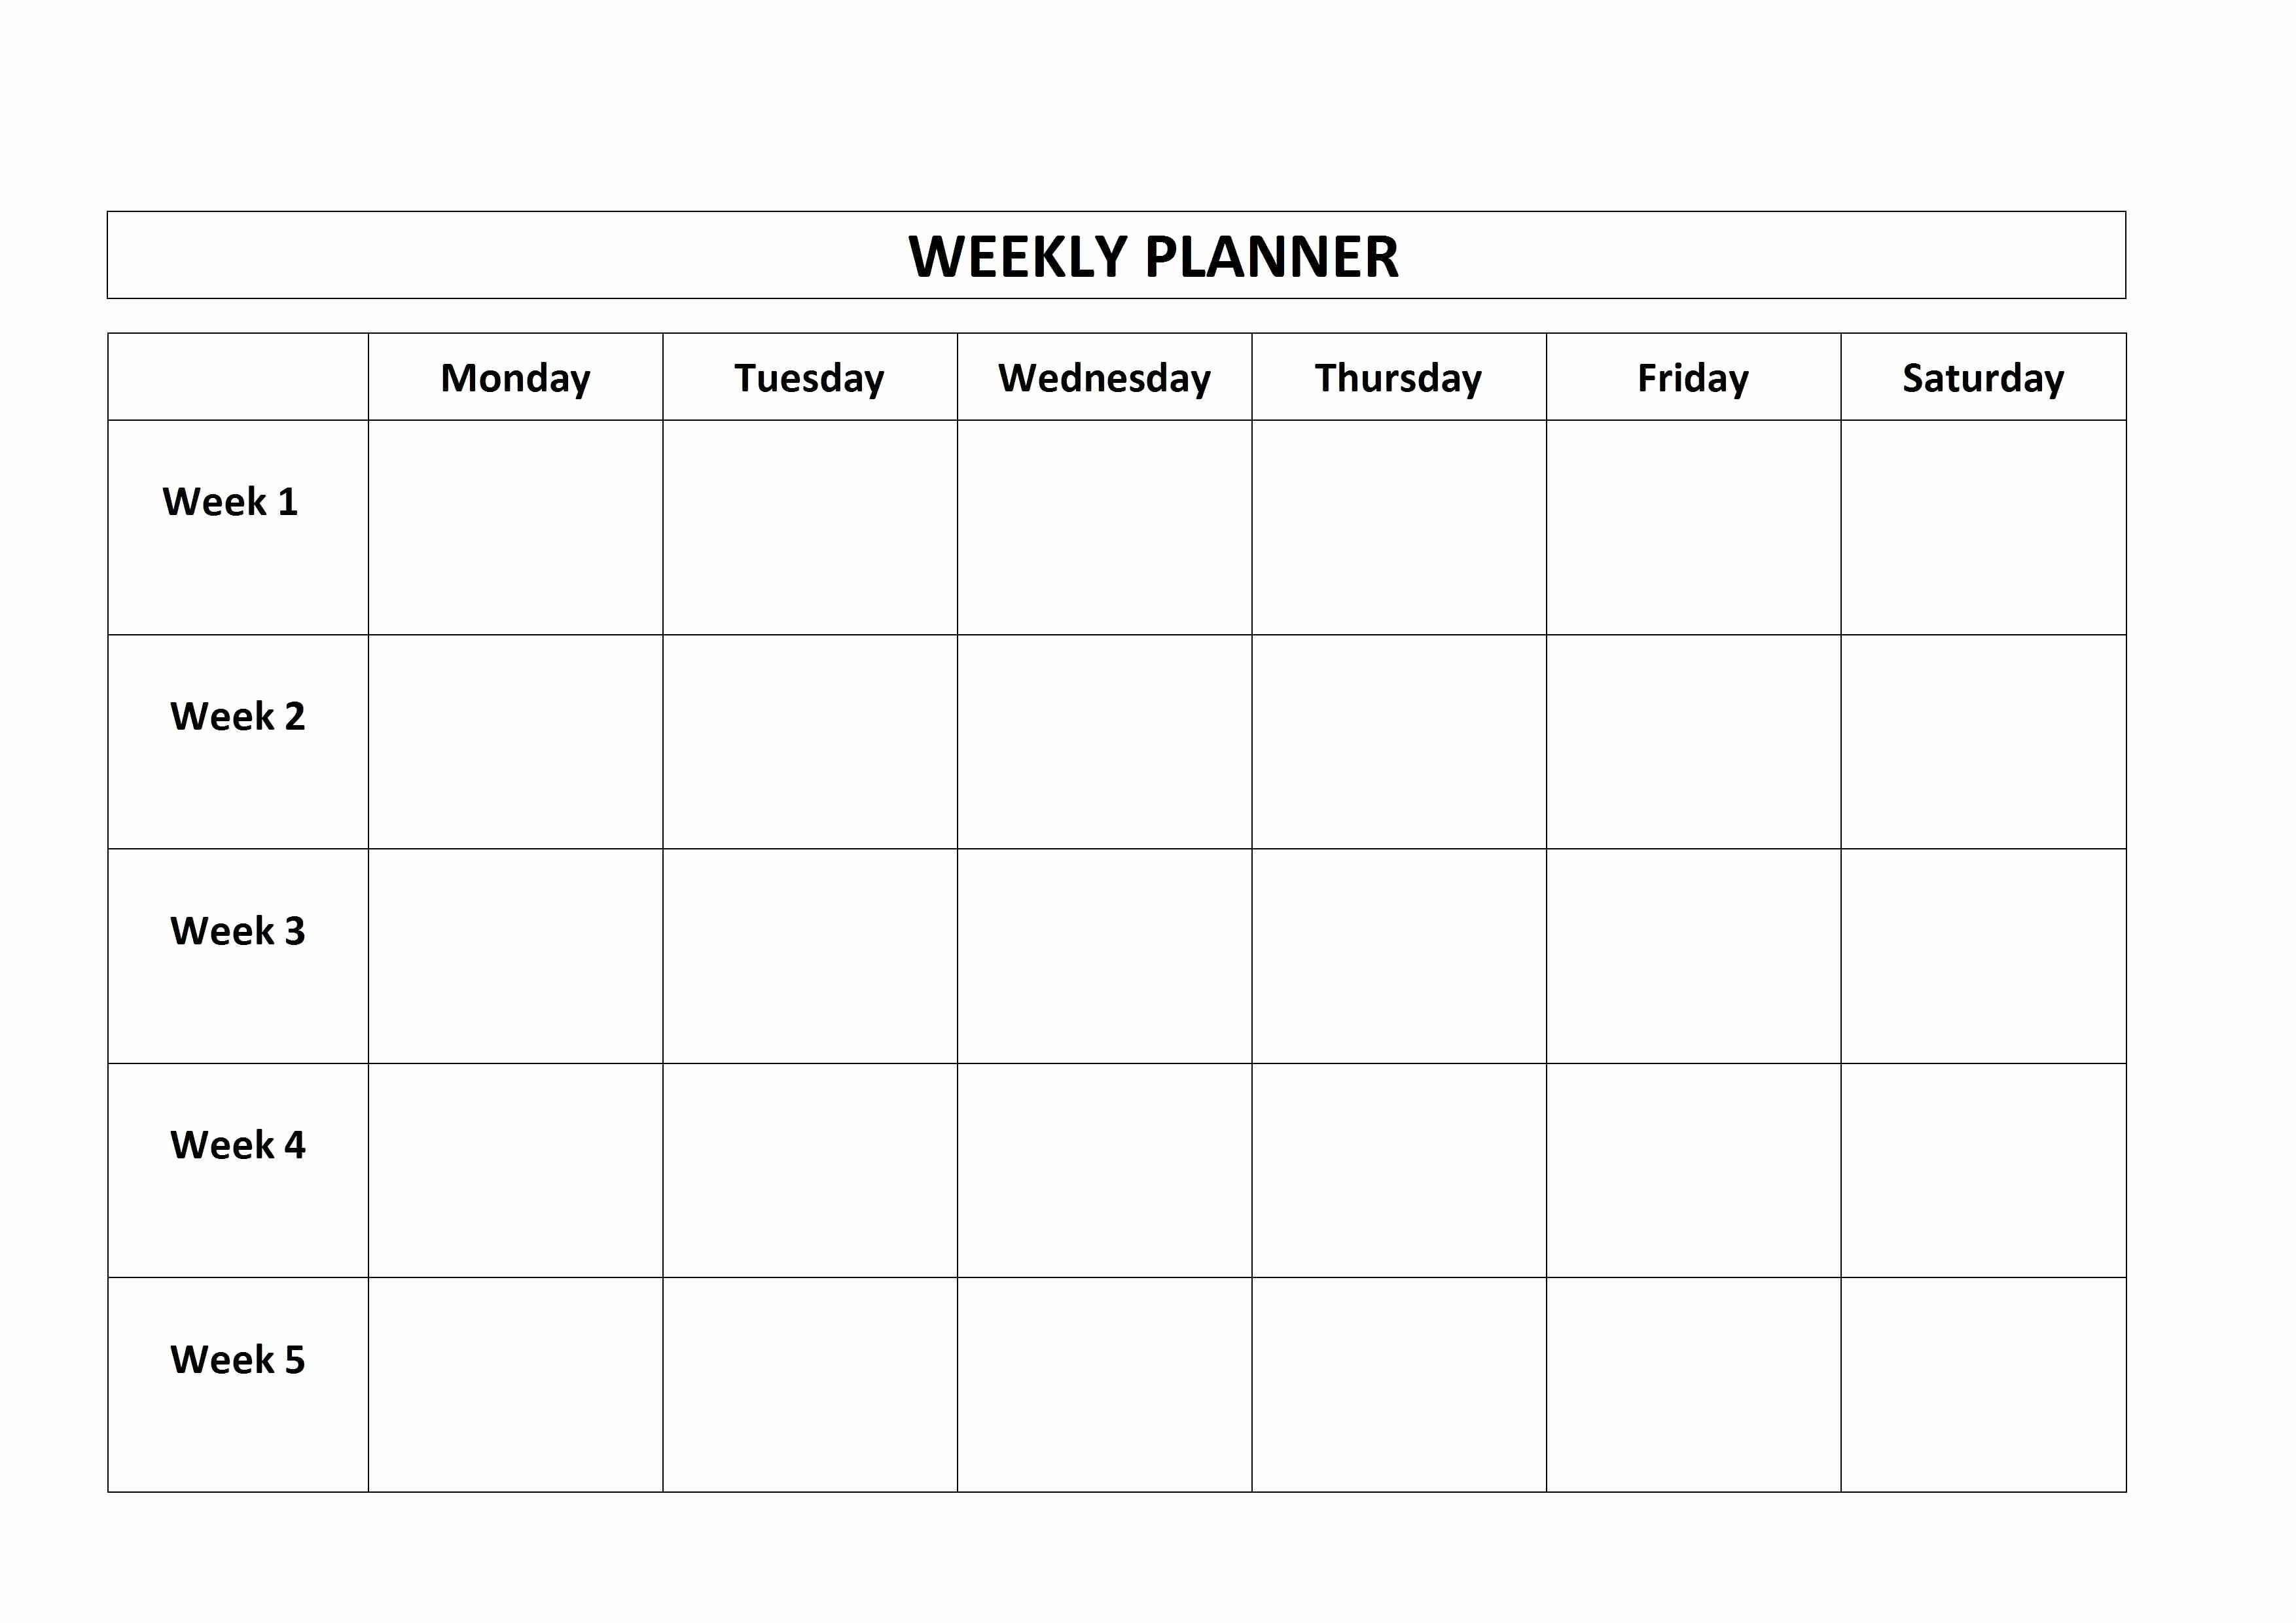 Monday Through Friday Hourly Calendar Beautiful 87 Monday Through Friday Schedule Template Weekly